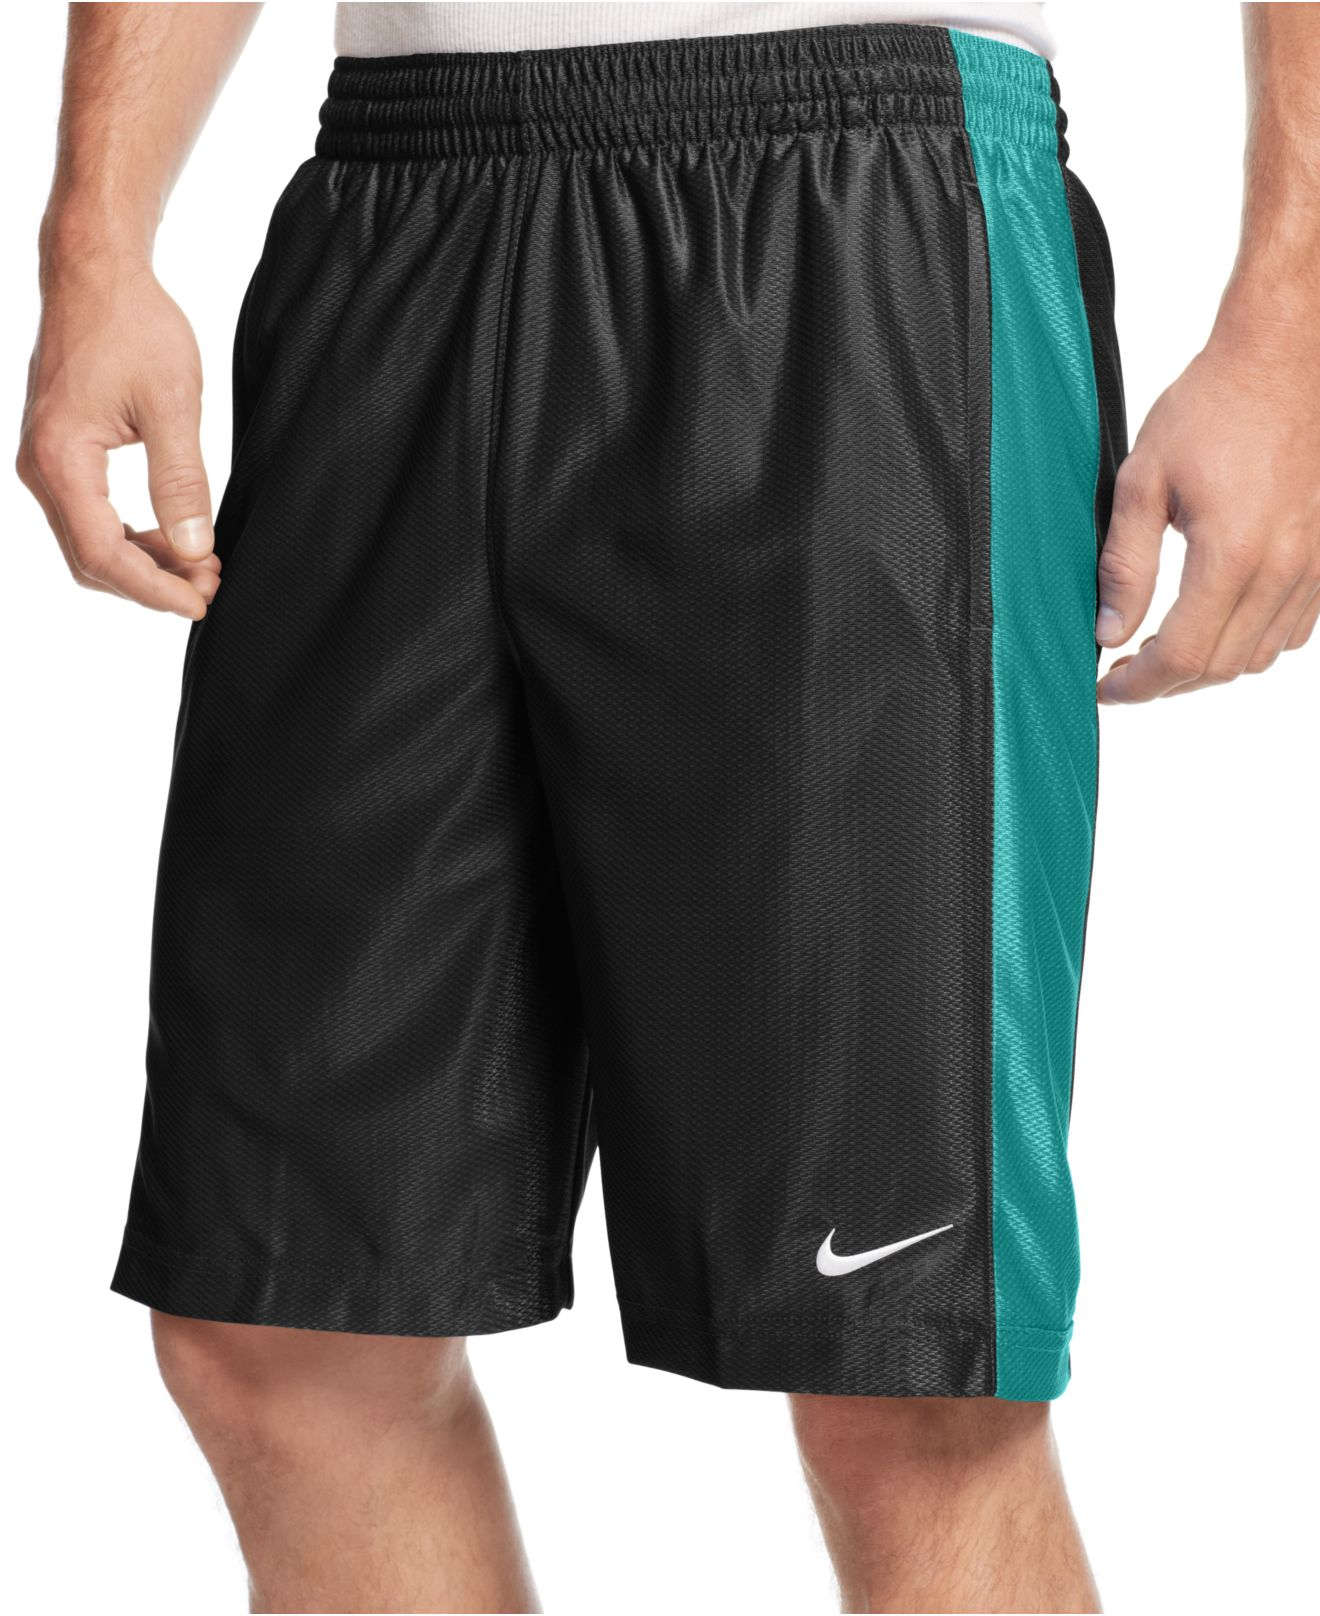 Under Armour Basketball Shorts With Pockets Nike Zone Mesh Basketb...